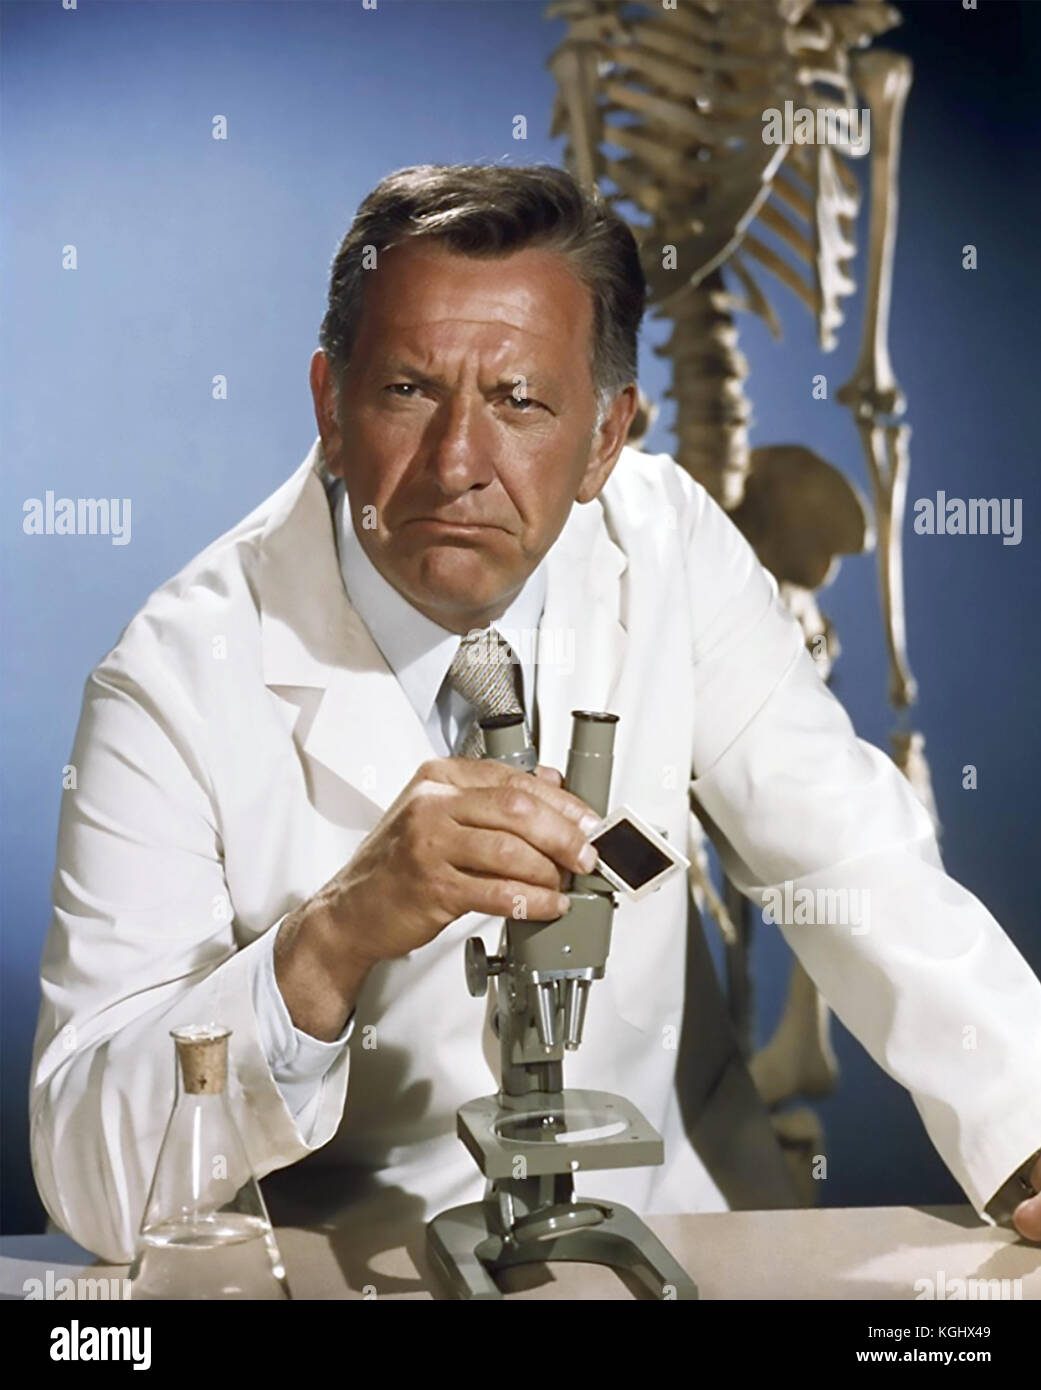 QUINCY, M.E. Universal Studios TV series 1976-1983 with Jack Klugman - Stock Image